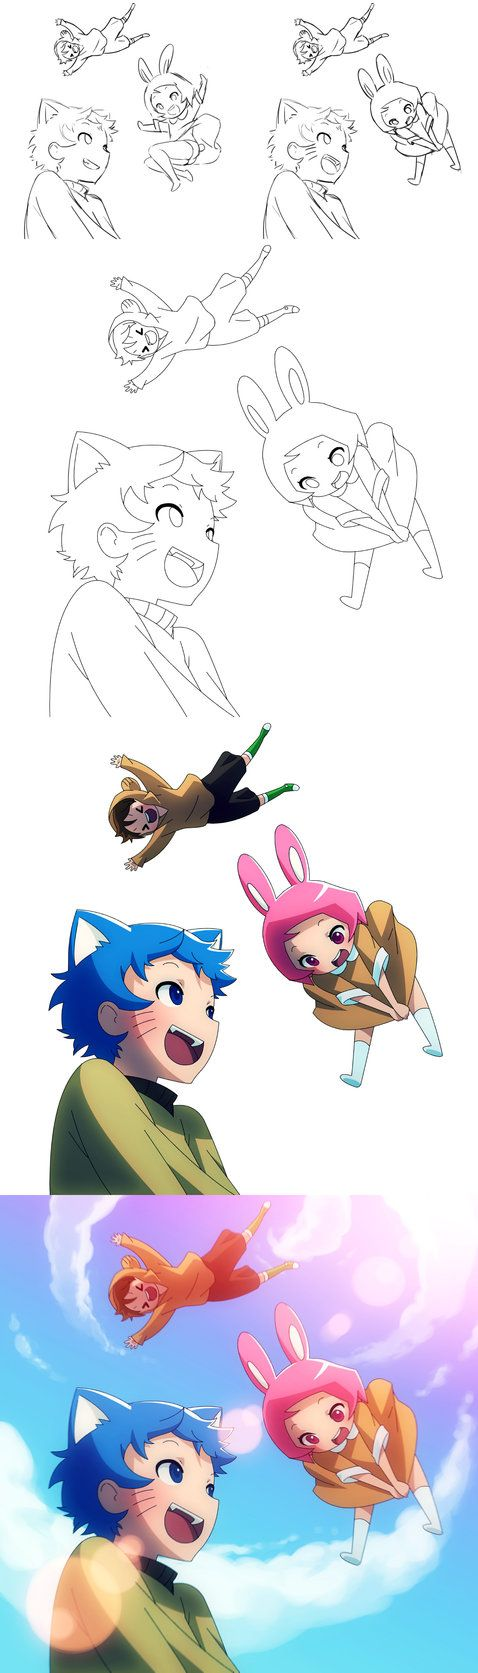 Flying cat, bunny, and fish by Mikeinel on DeviantArt